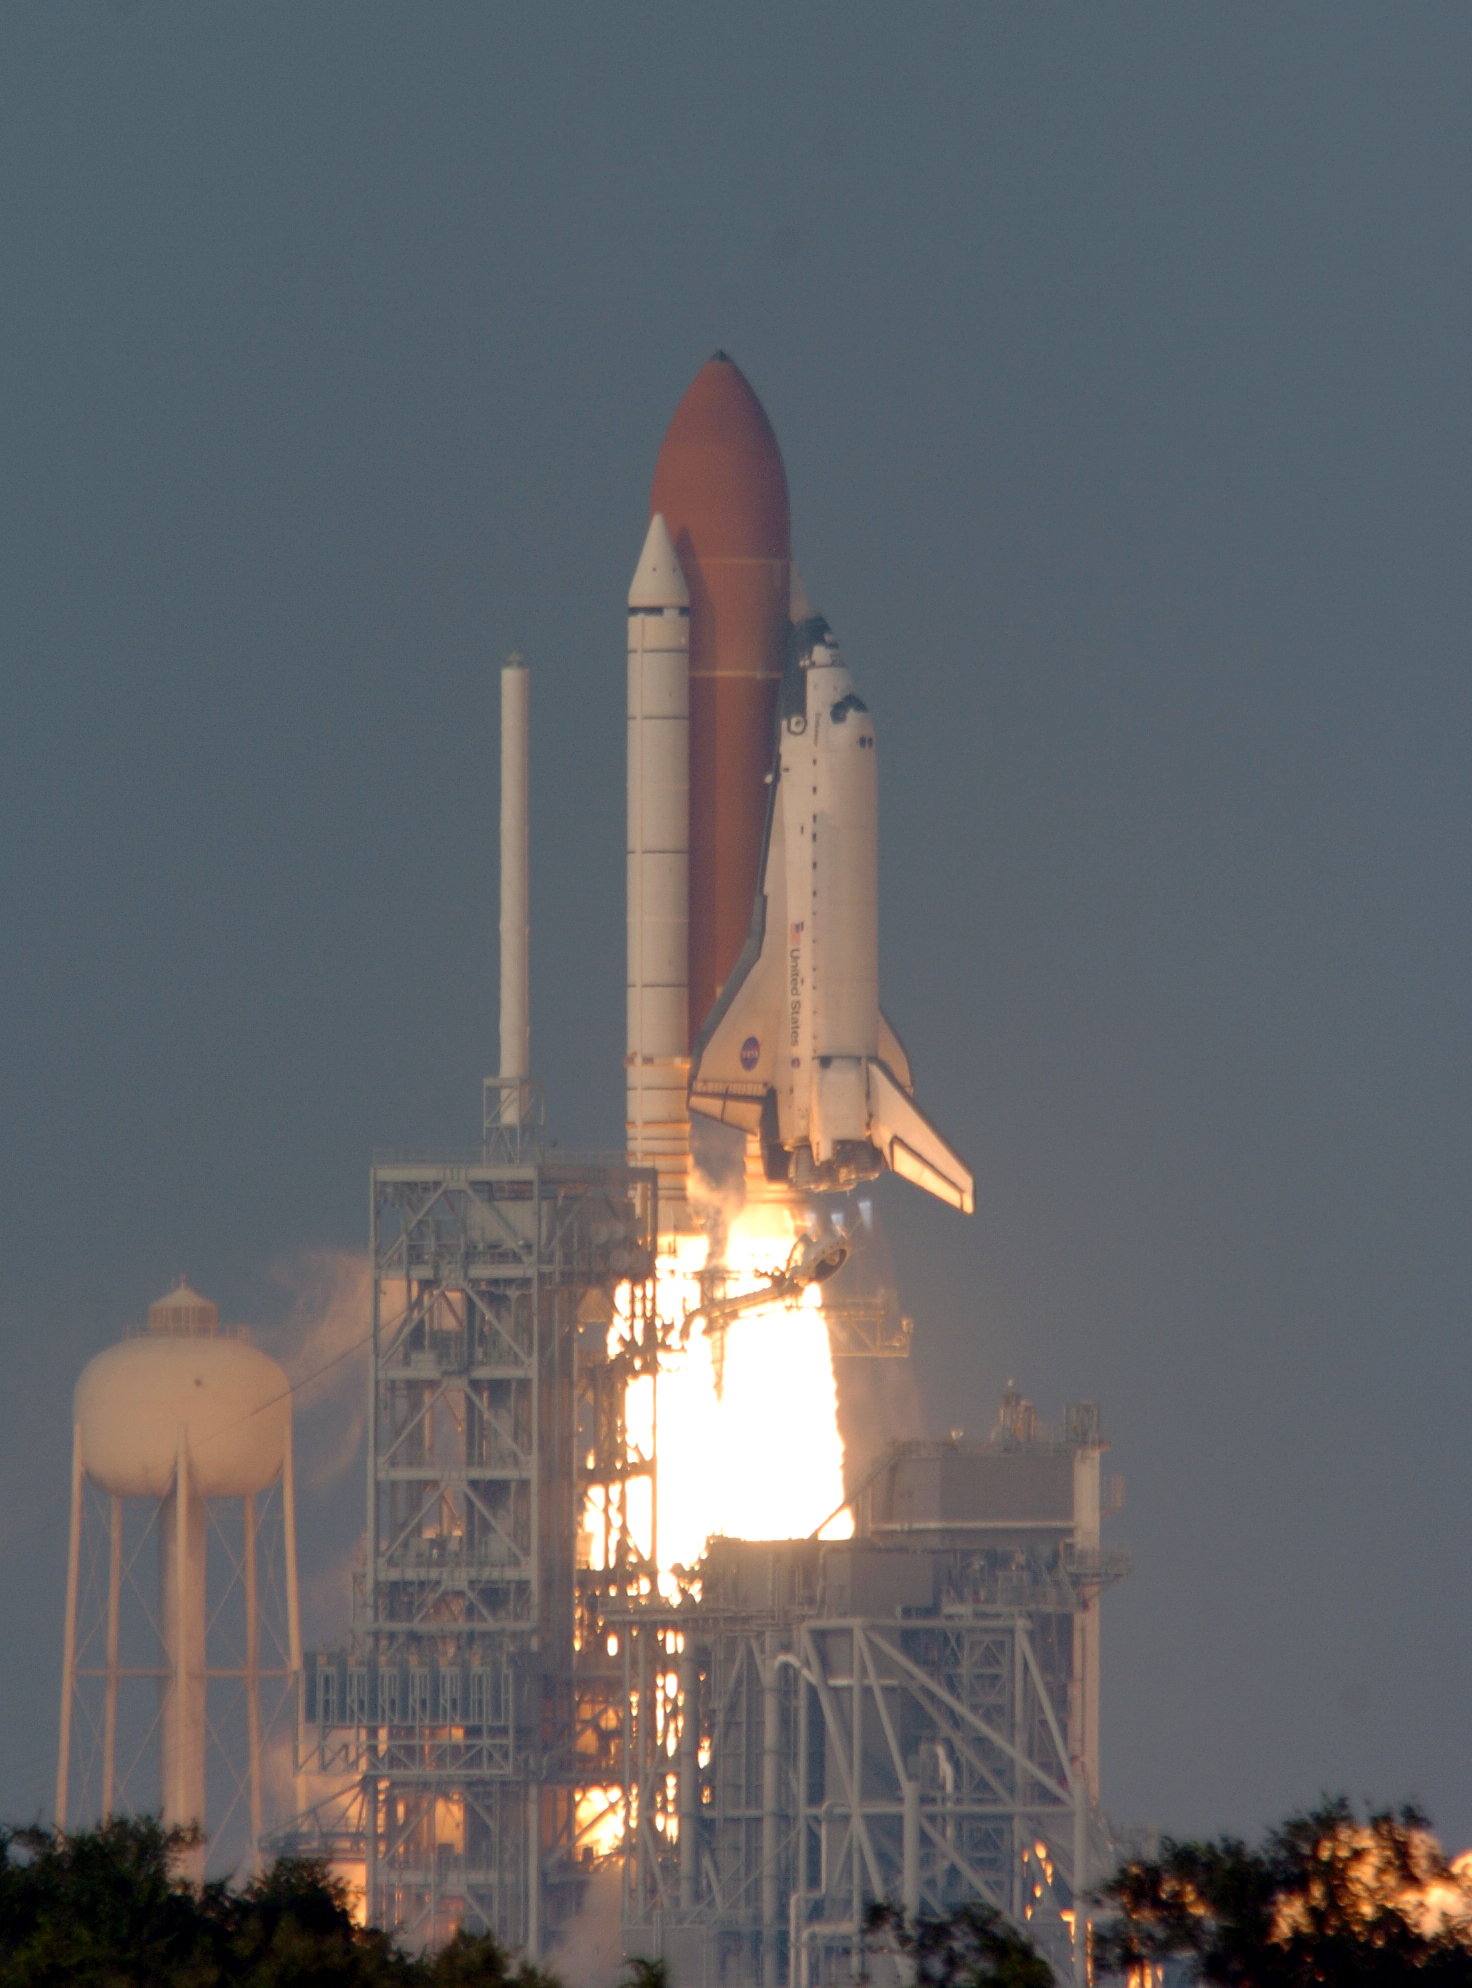 Shuttle Endeavor Launch